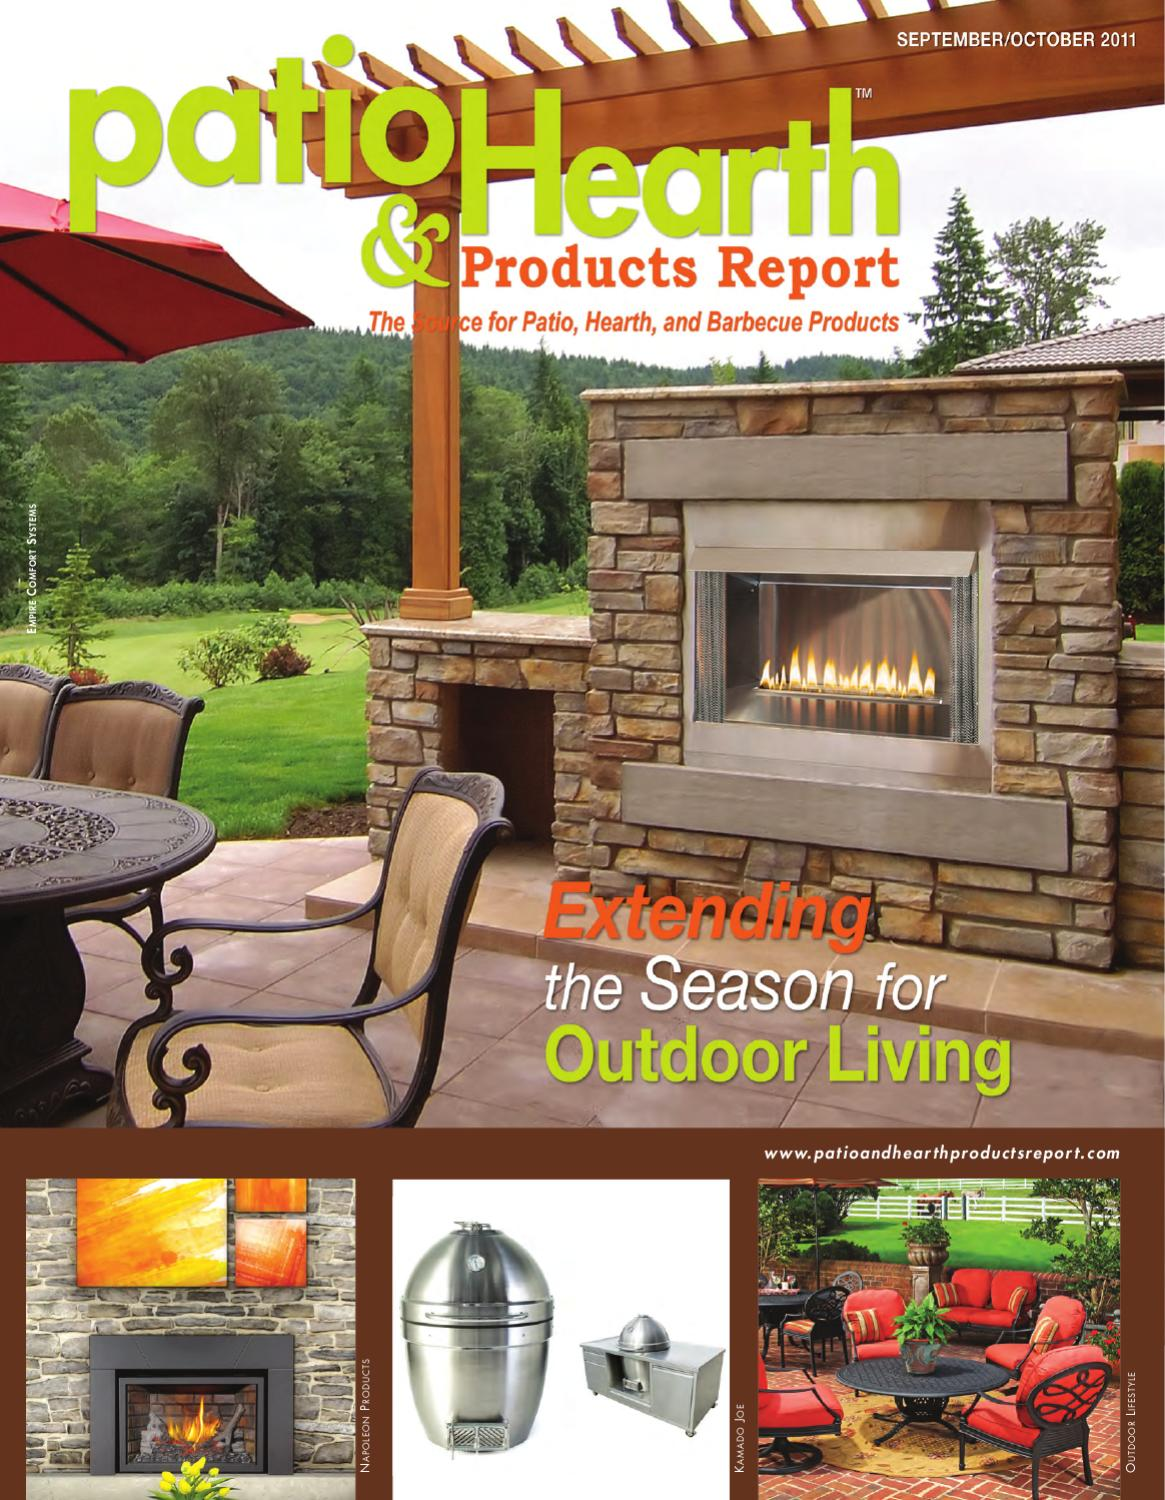 Georgetown Fireplace and Patios Lovely Patio and Hearth Products Report Sept Oct 2011 by